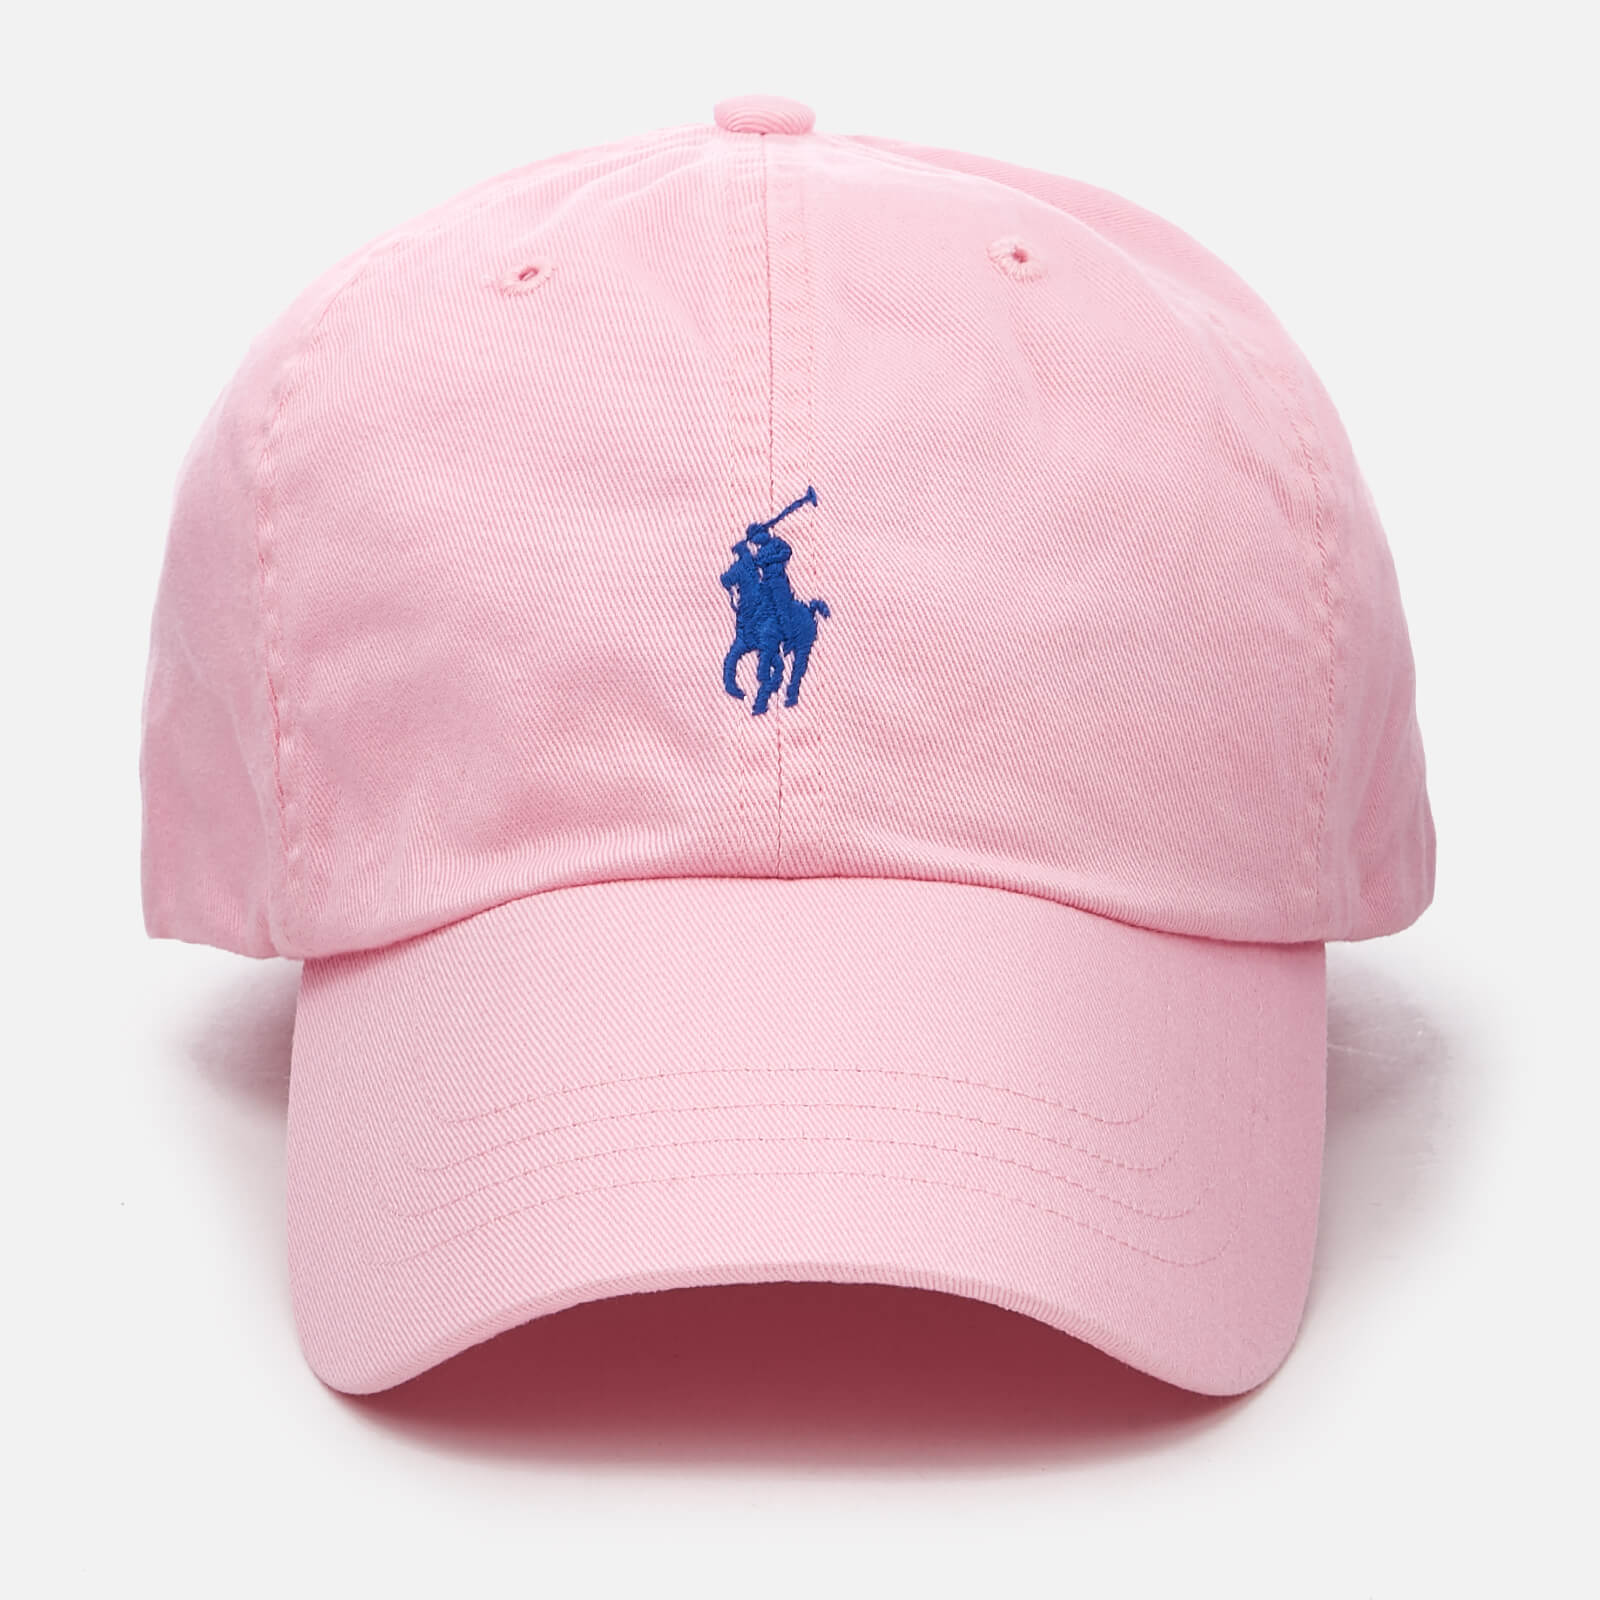 f28171b51 Polo Ralph Lauren Men s Classic Sports Cap - Pink - Free UK Delivery over  £50